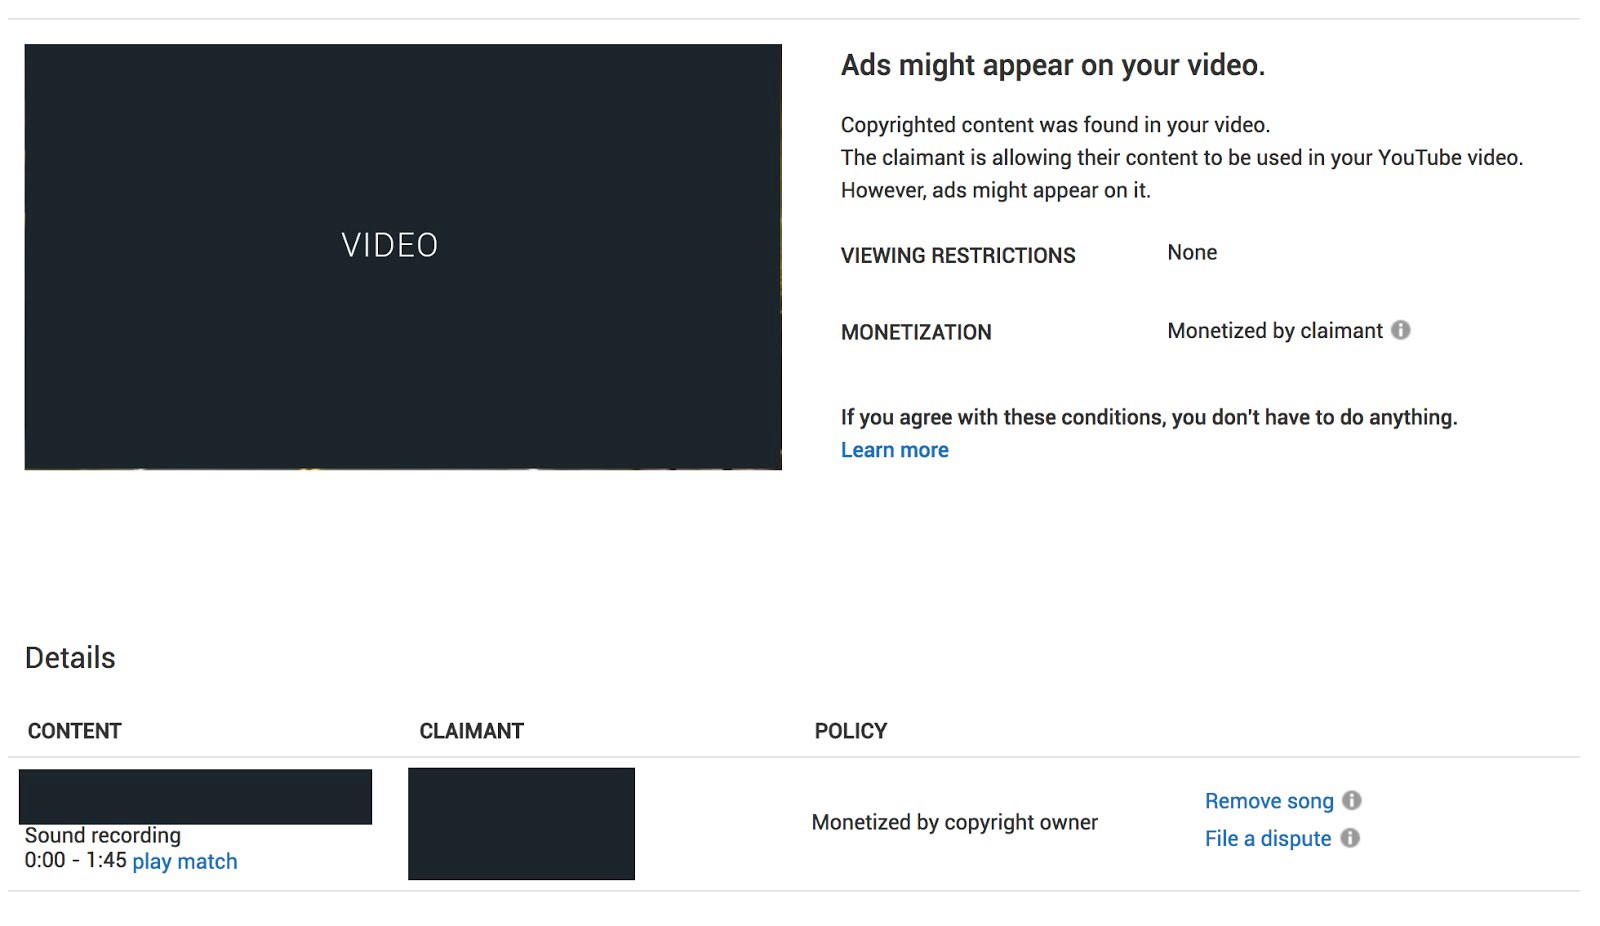 So you just received a copyright claim on your YouTube video